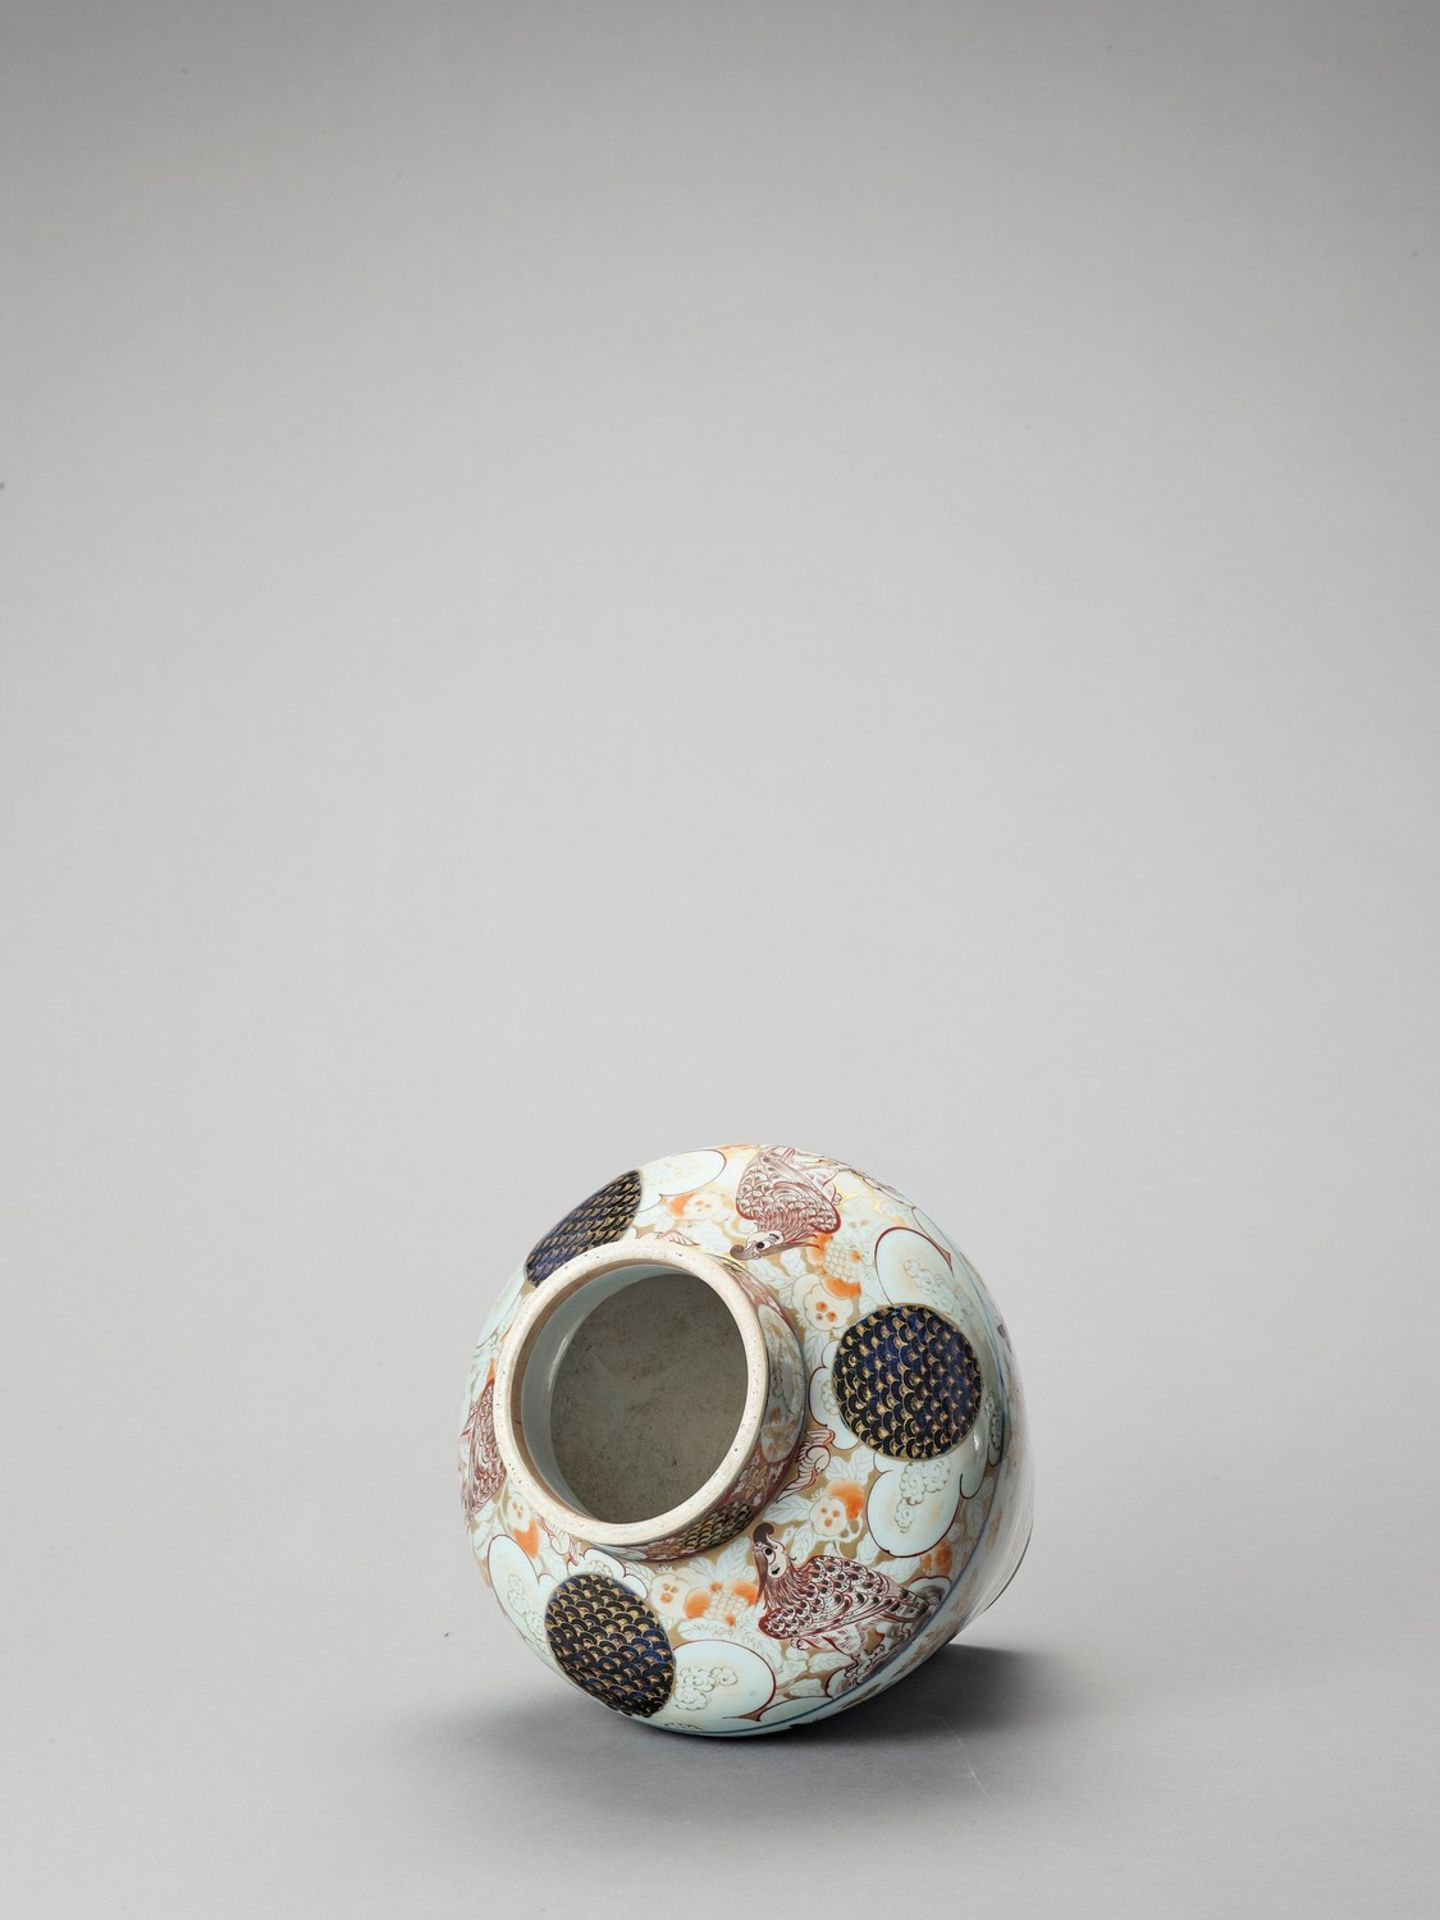 A LARGE IMARI PORCELAIN BALUSTER VASE AND COVER - Image 5 of 7